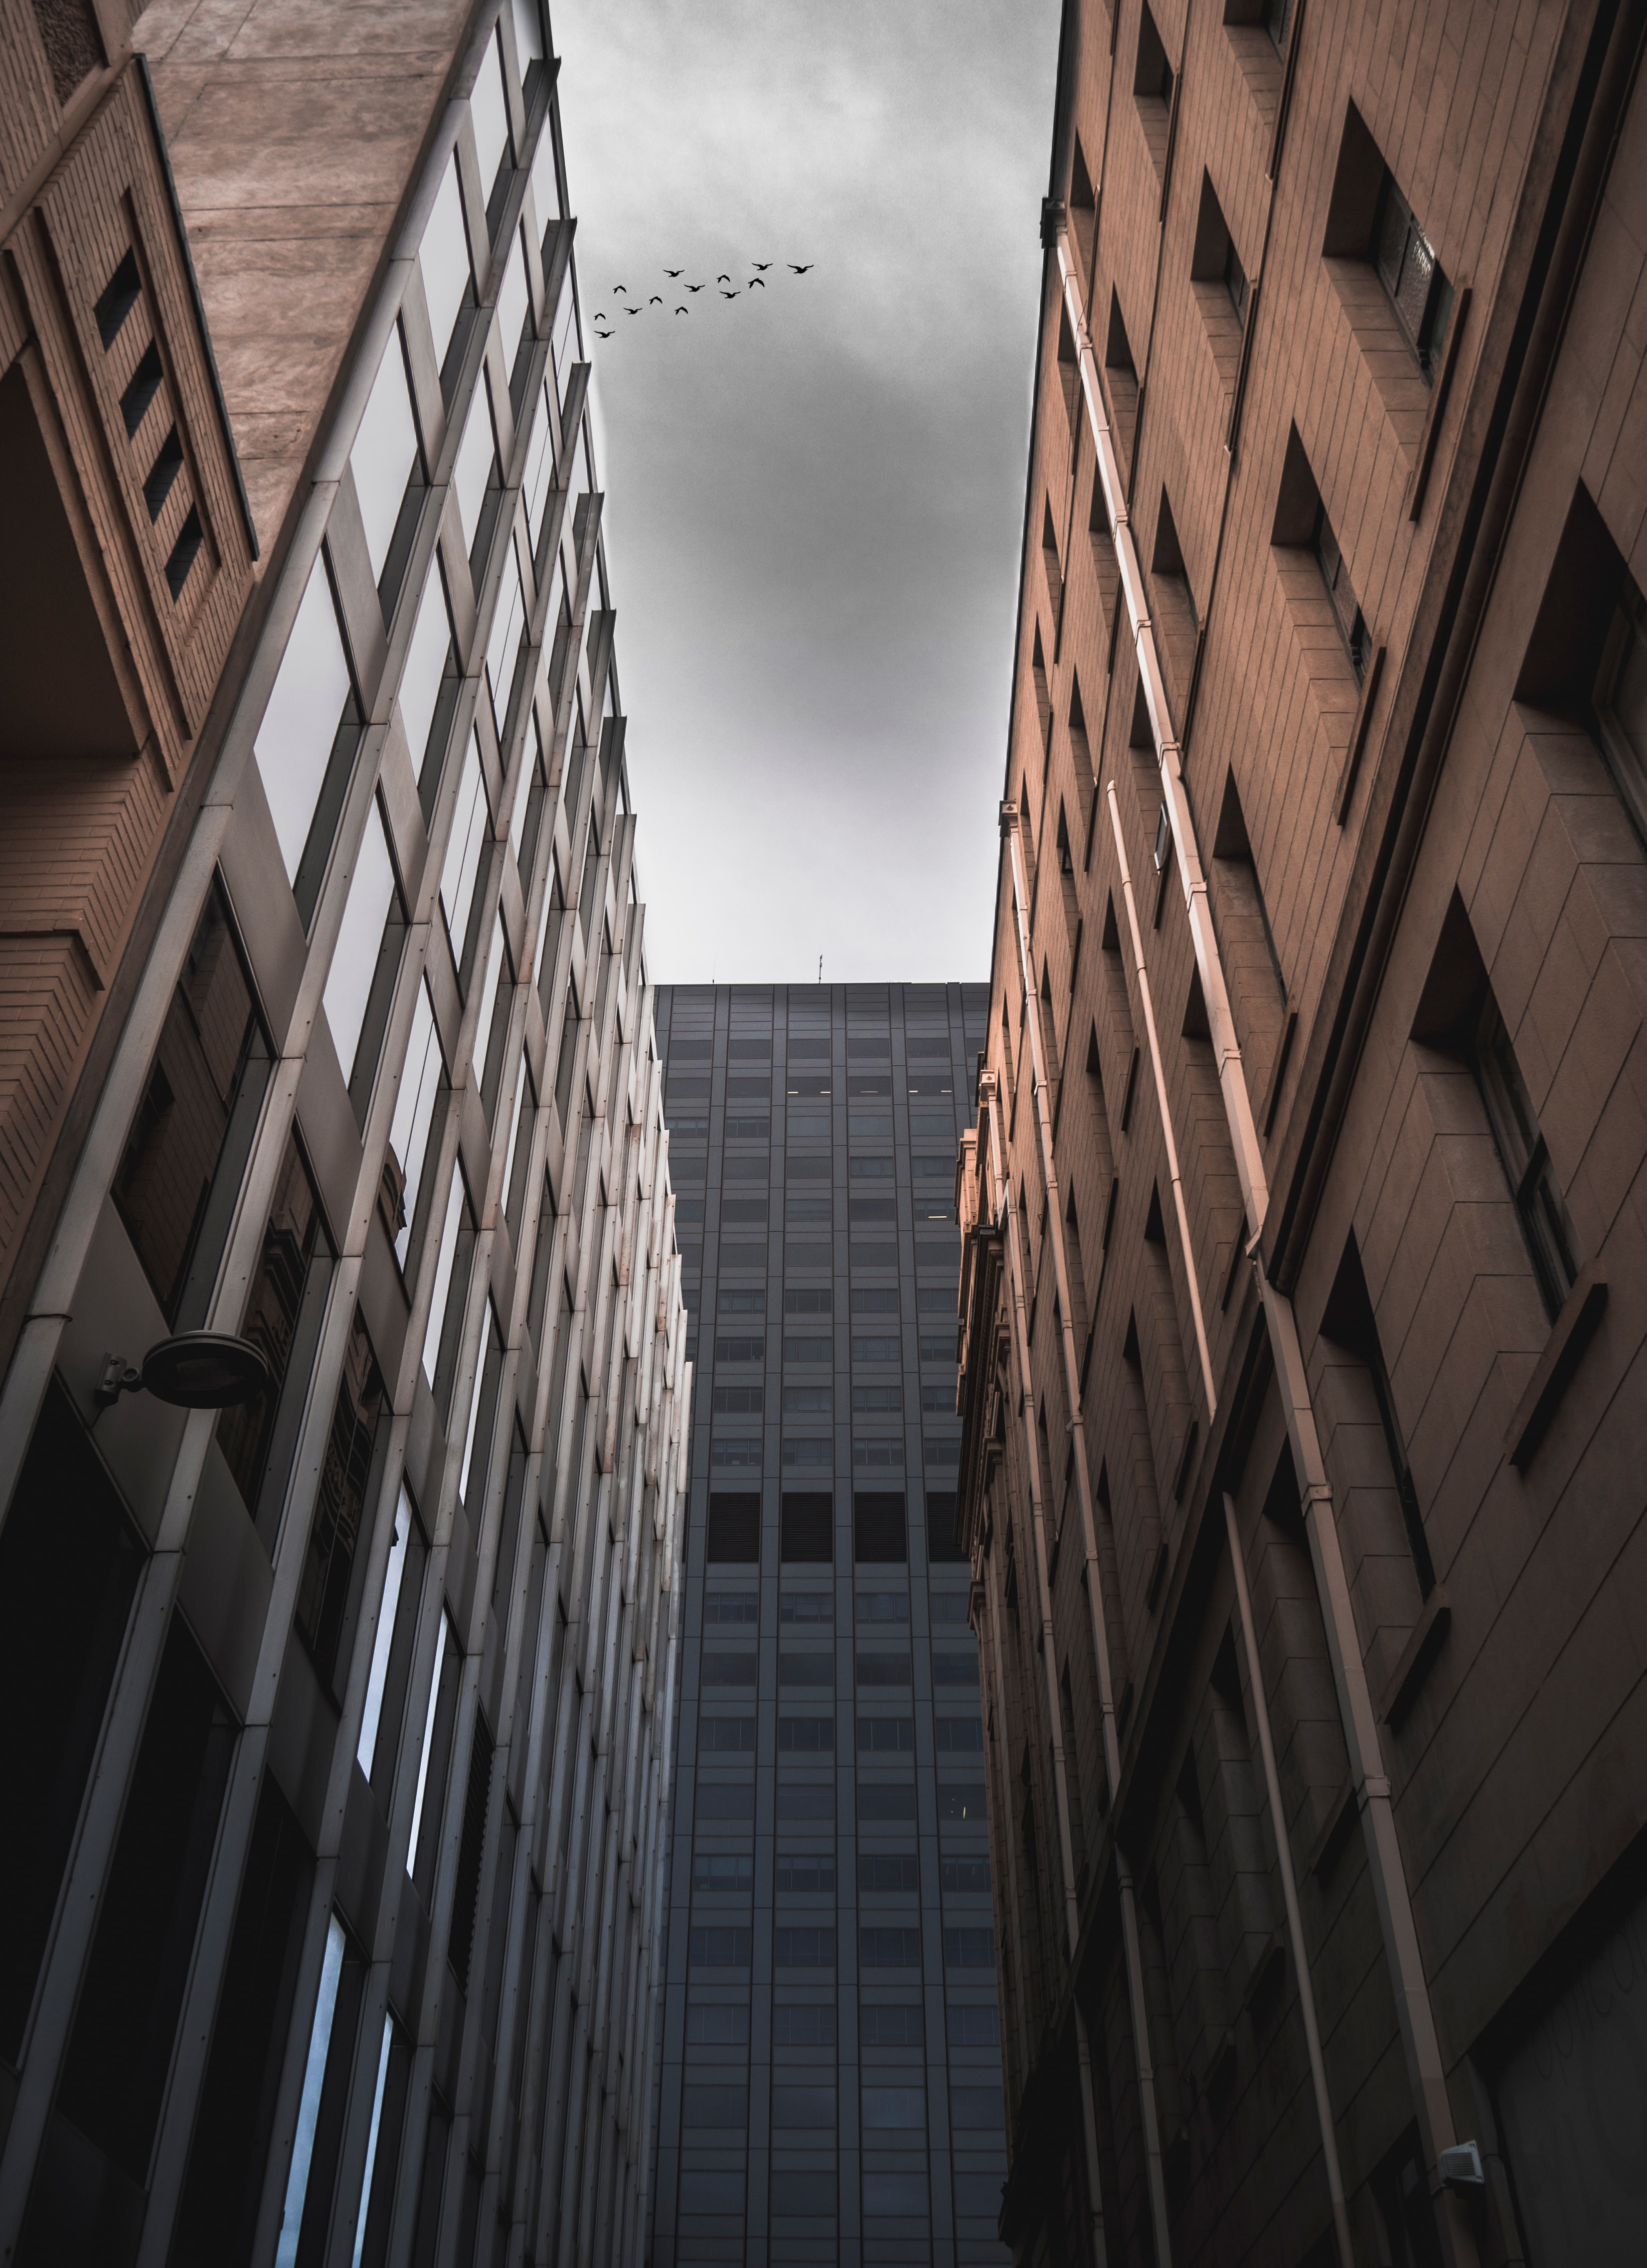 low angle photograph of flock of bird flying above buildings